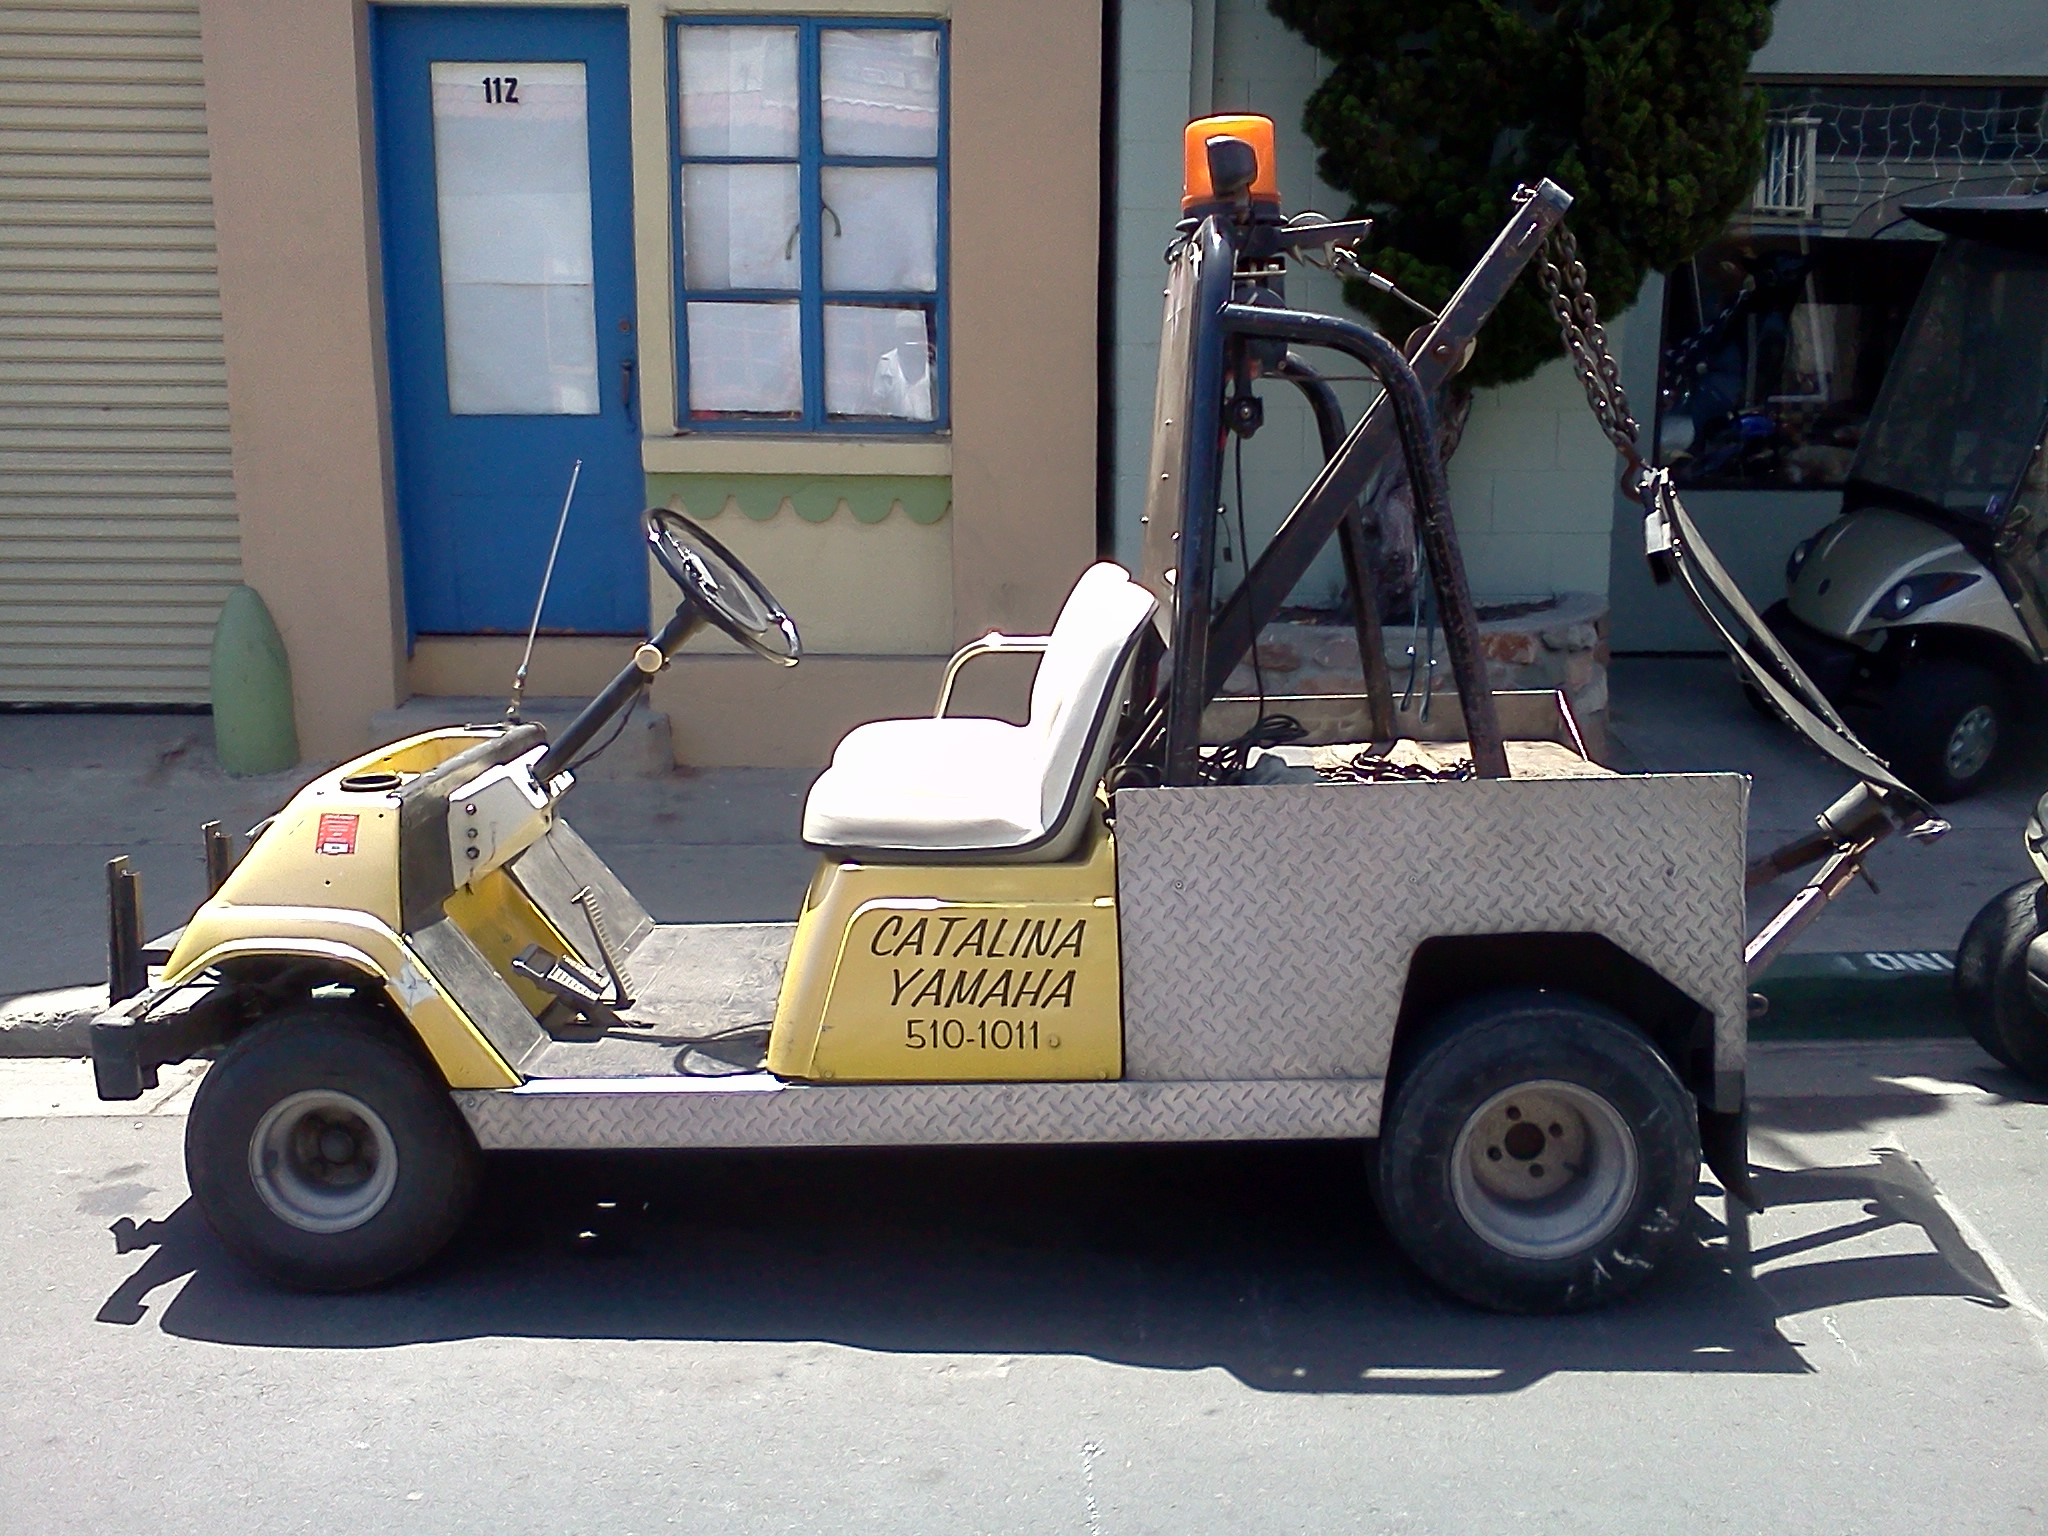 Caption: A golf cart for towing golf carts, Credit: Alex Ward